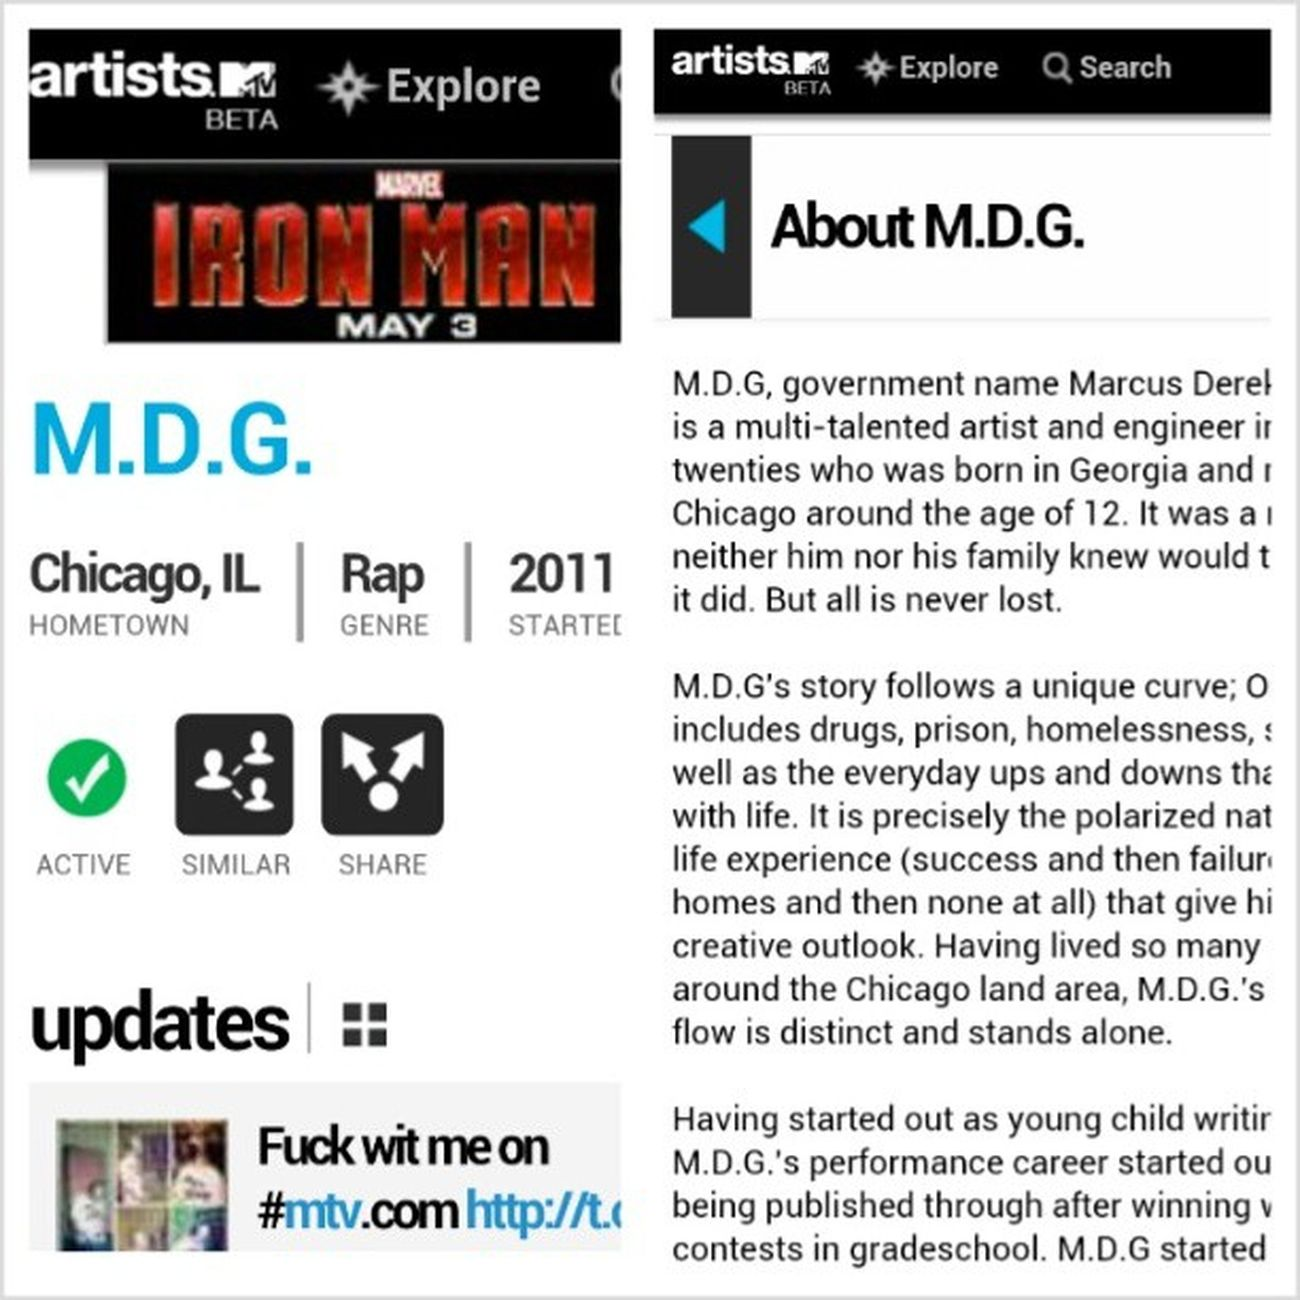 Stay in tune with Thecampaign on mtv.com ForNoReasonTheMixtape drops May 15th StackorStarve MysteryStreetRecordingCompany LiveIt mdgofficial